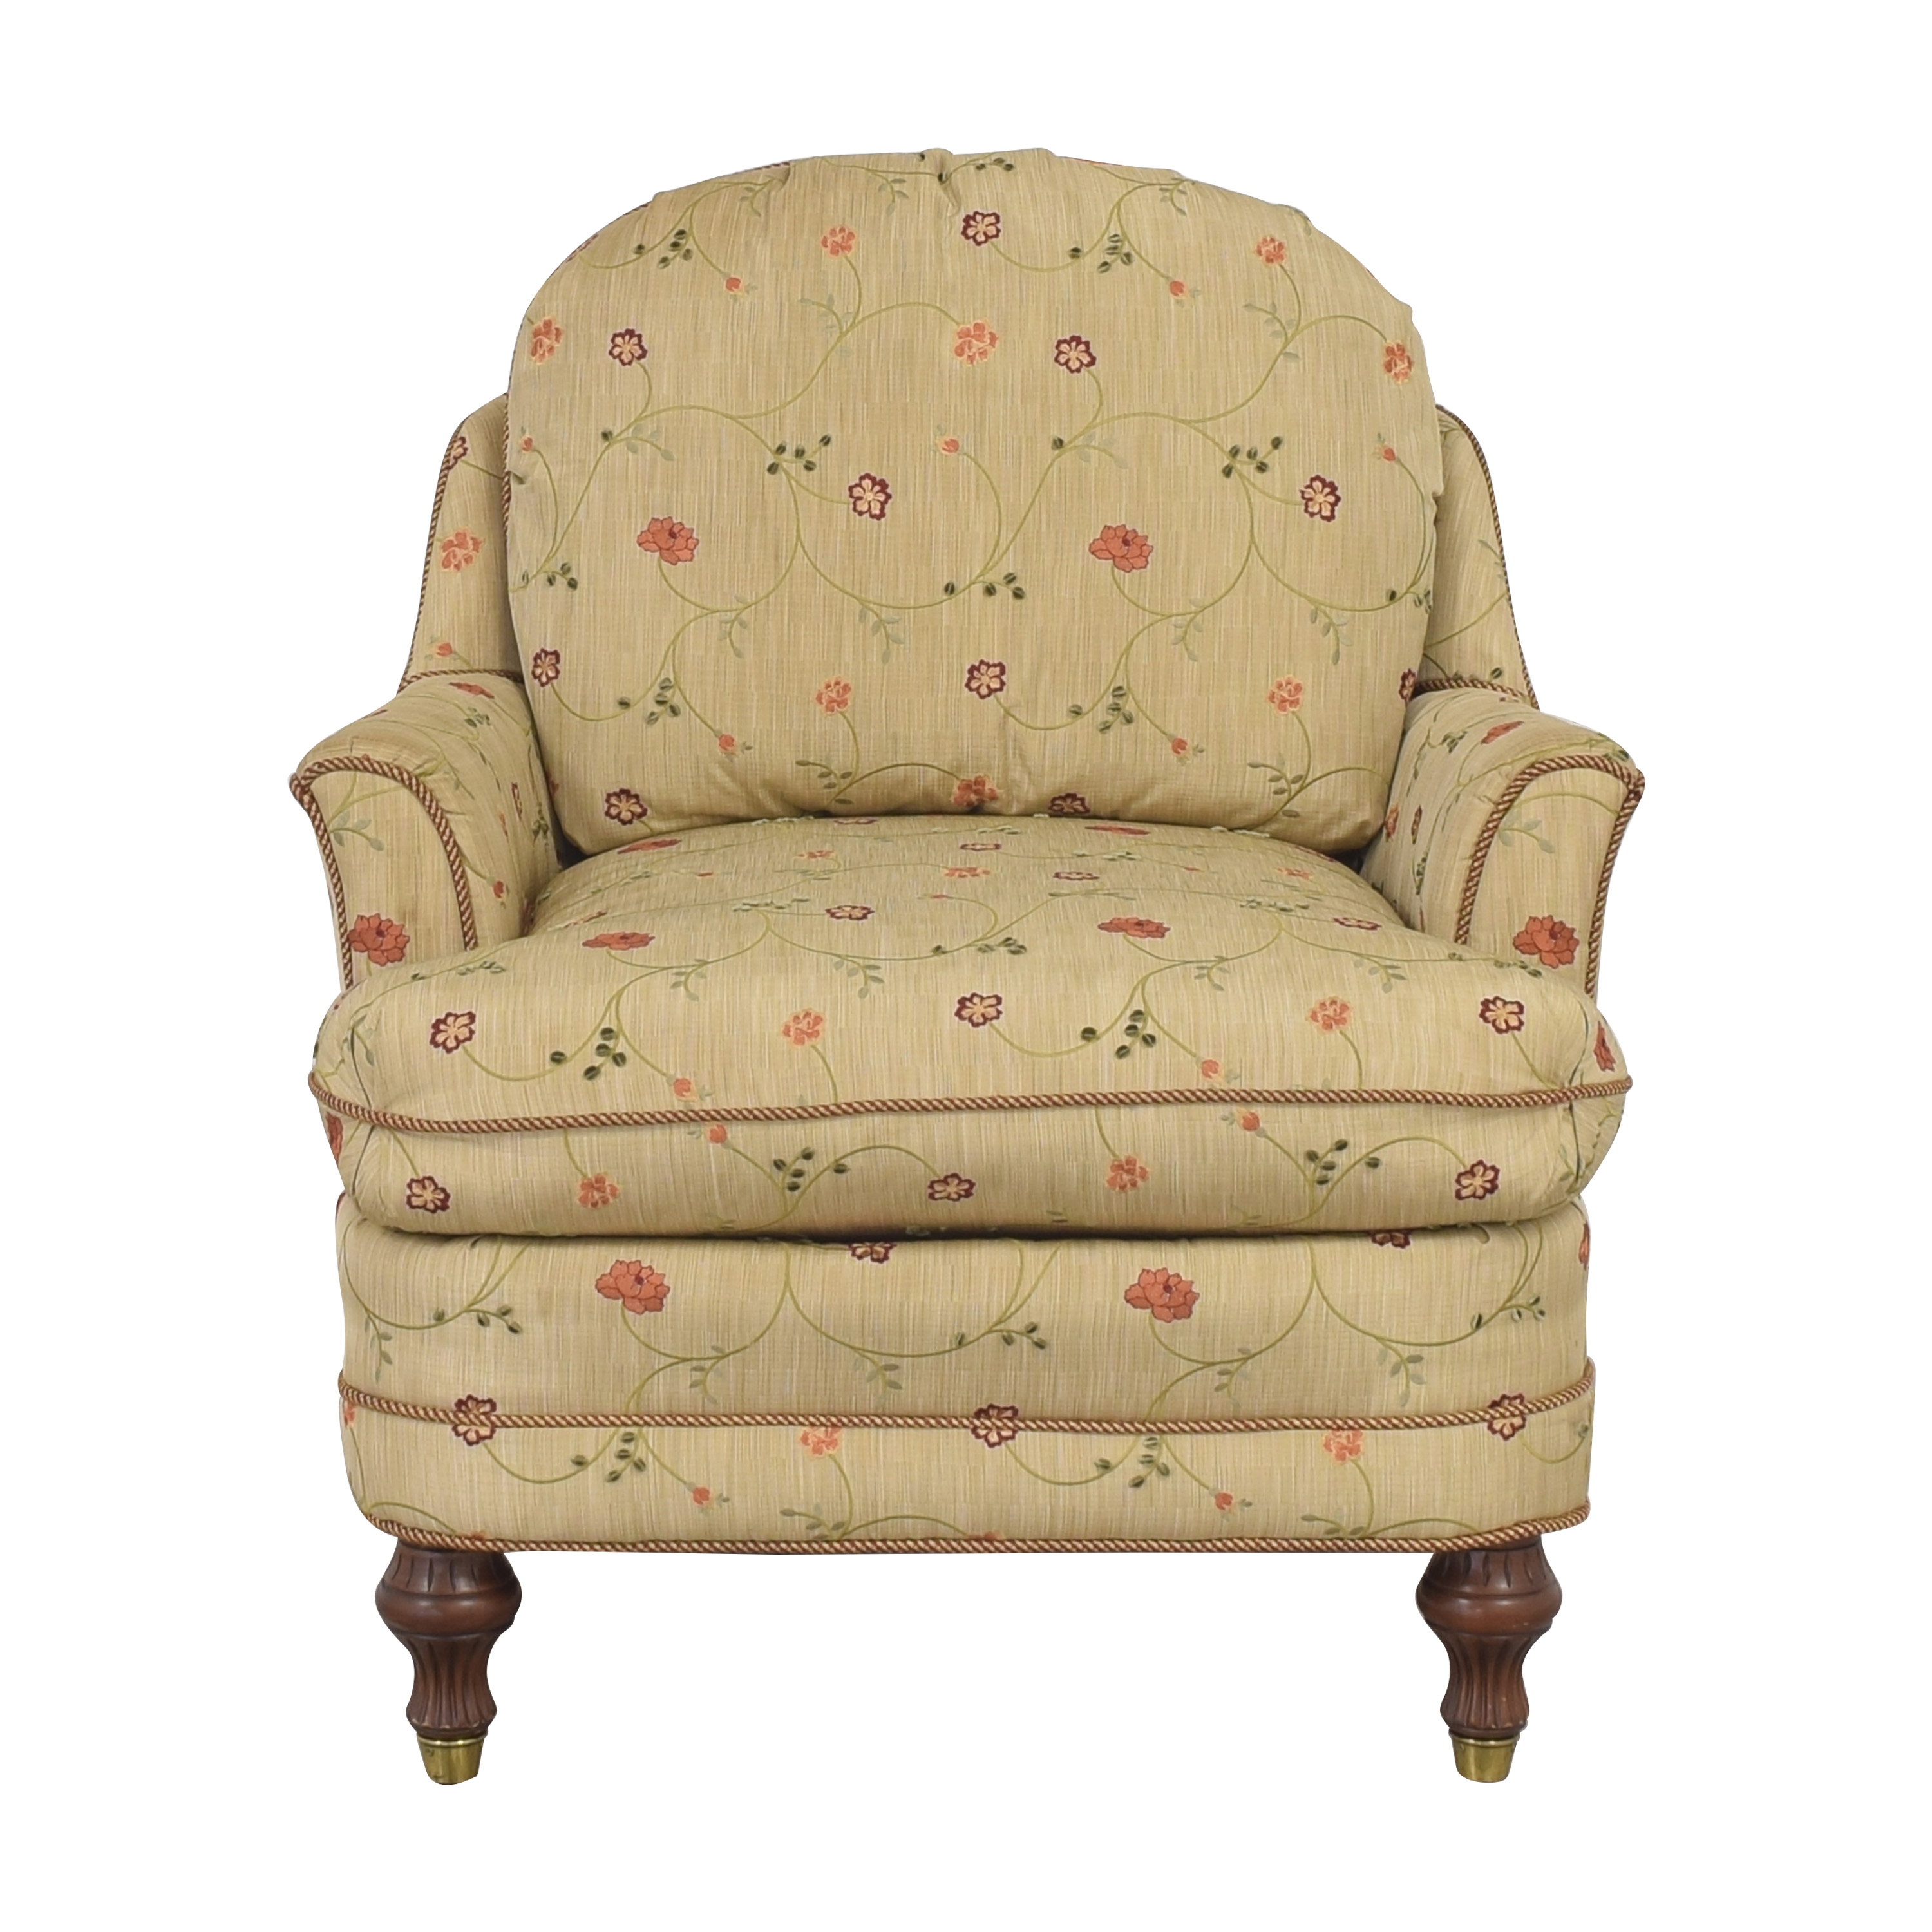 Calico Calico Corners Upholstered Arm Chair discount